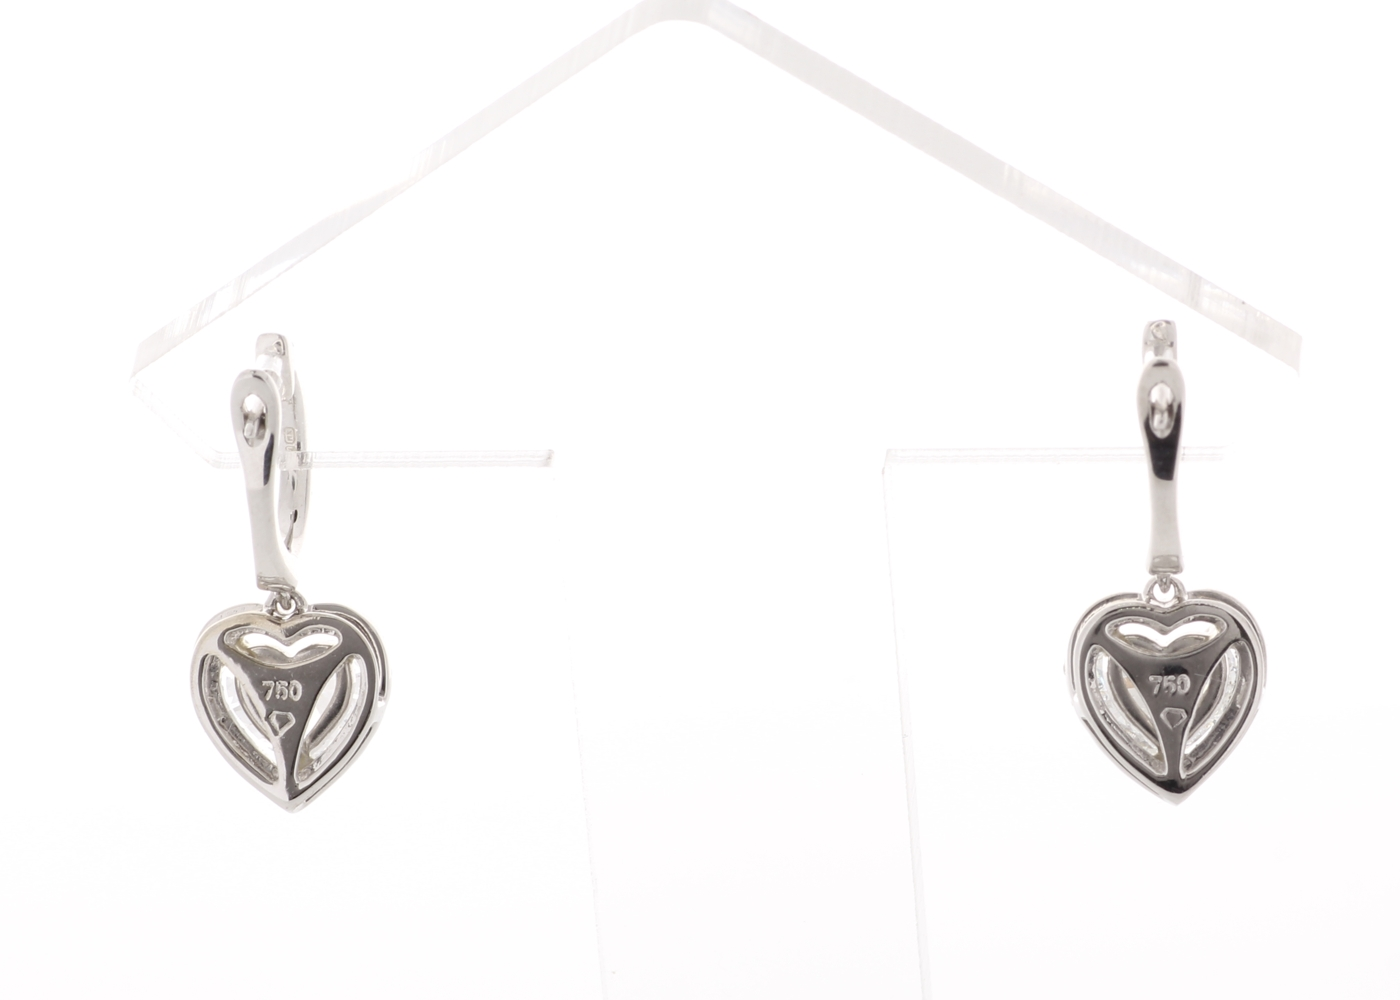 18ct White Gold Heart Shape Halo Drop Earring 1.74 Carats - Image 4 of 4